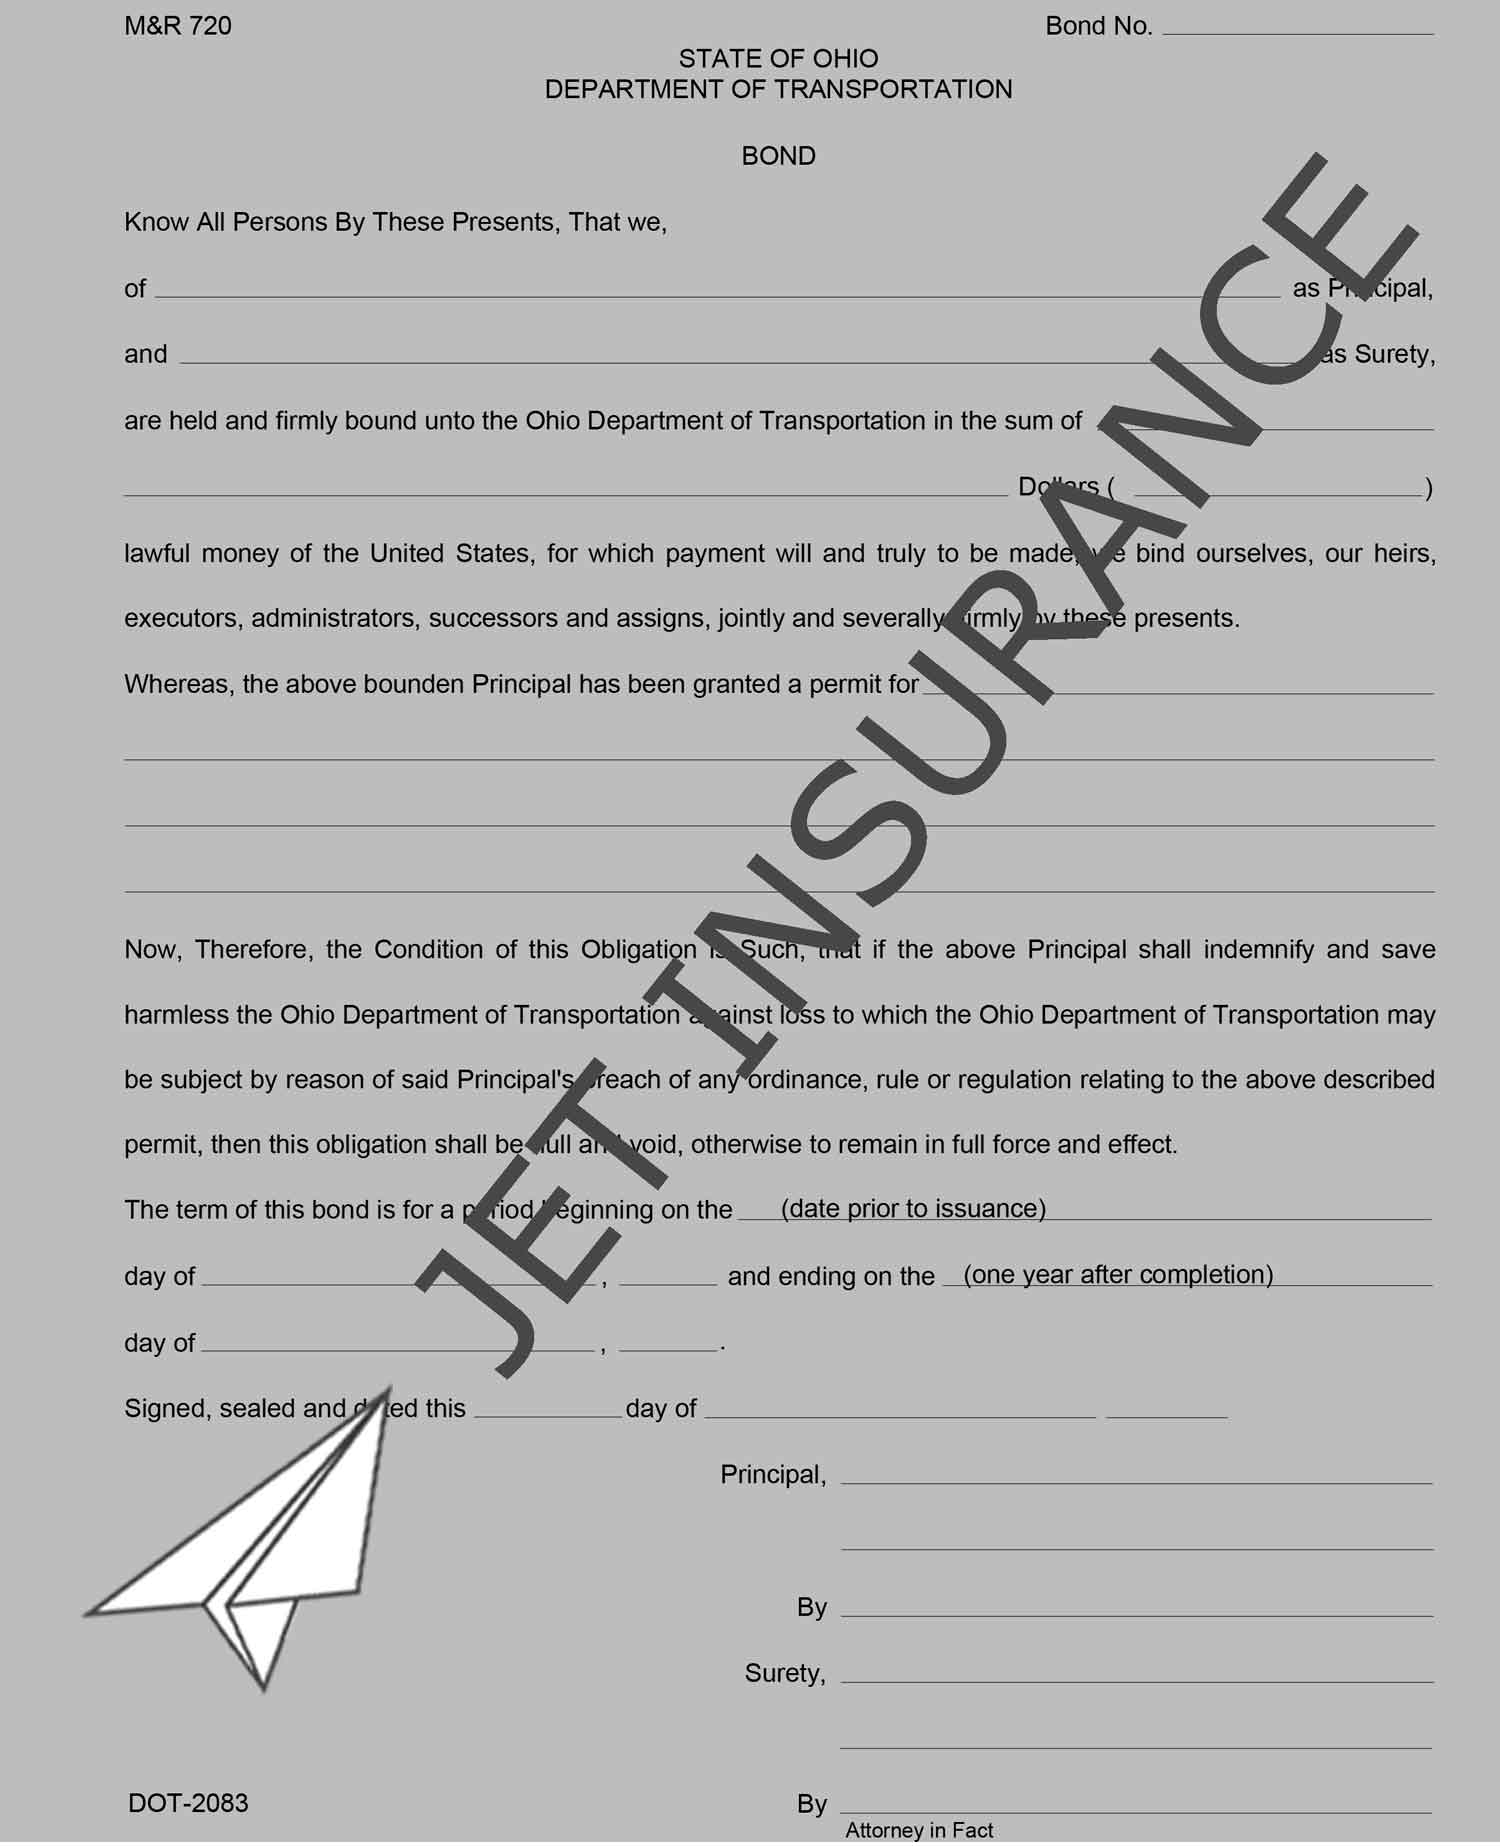 Ohio Highway Right of Way Permit and Maintenance Bond Form